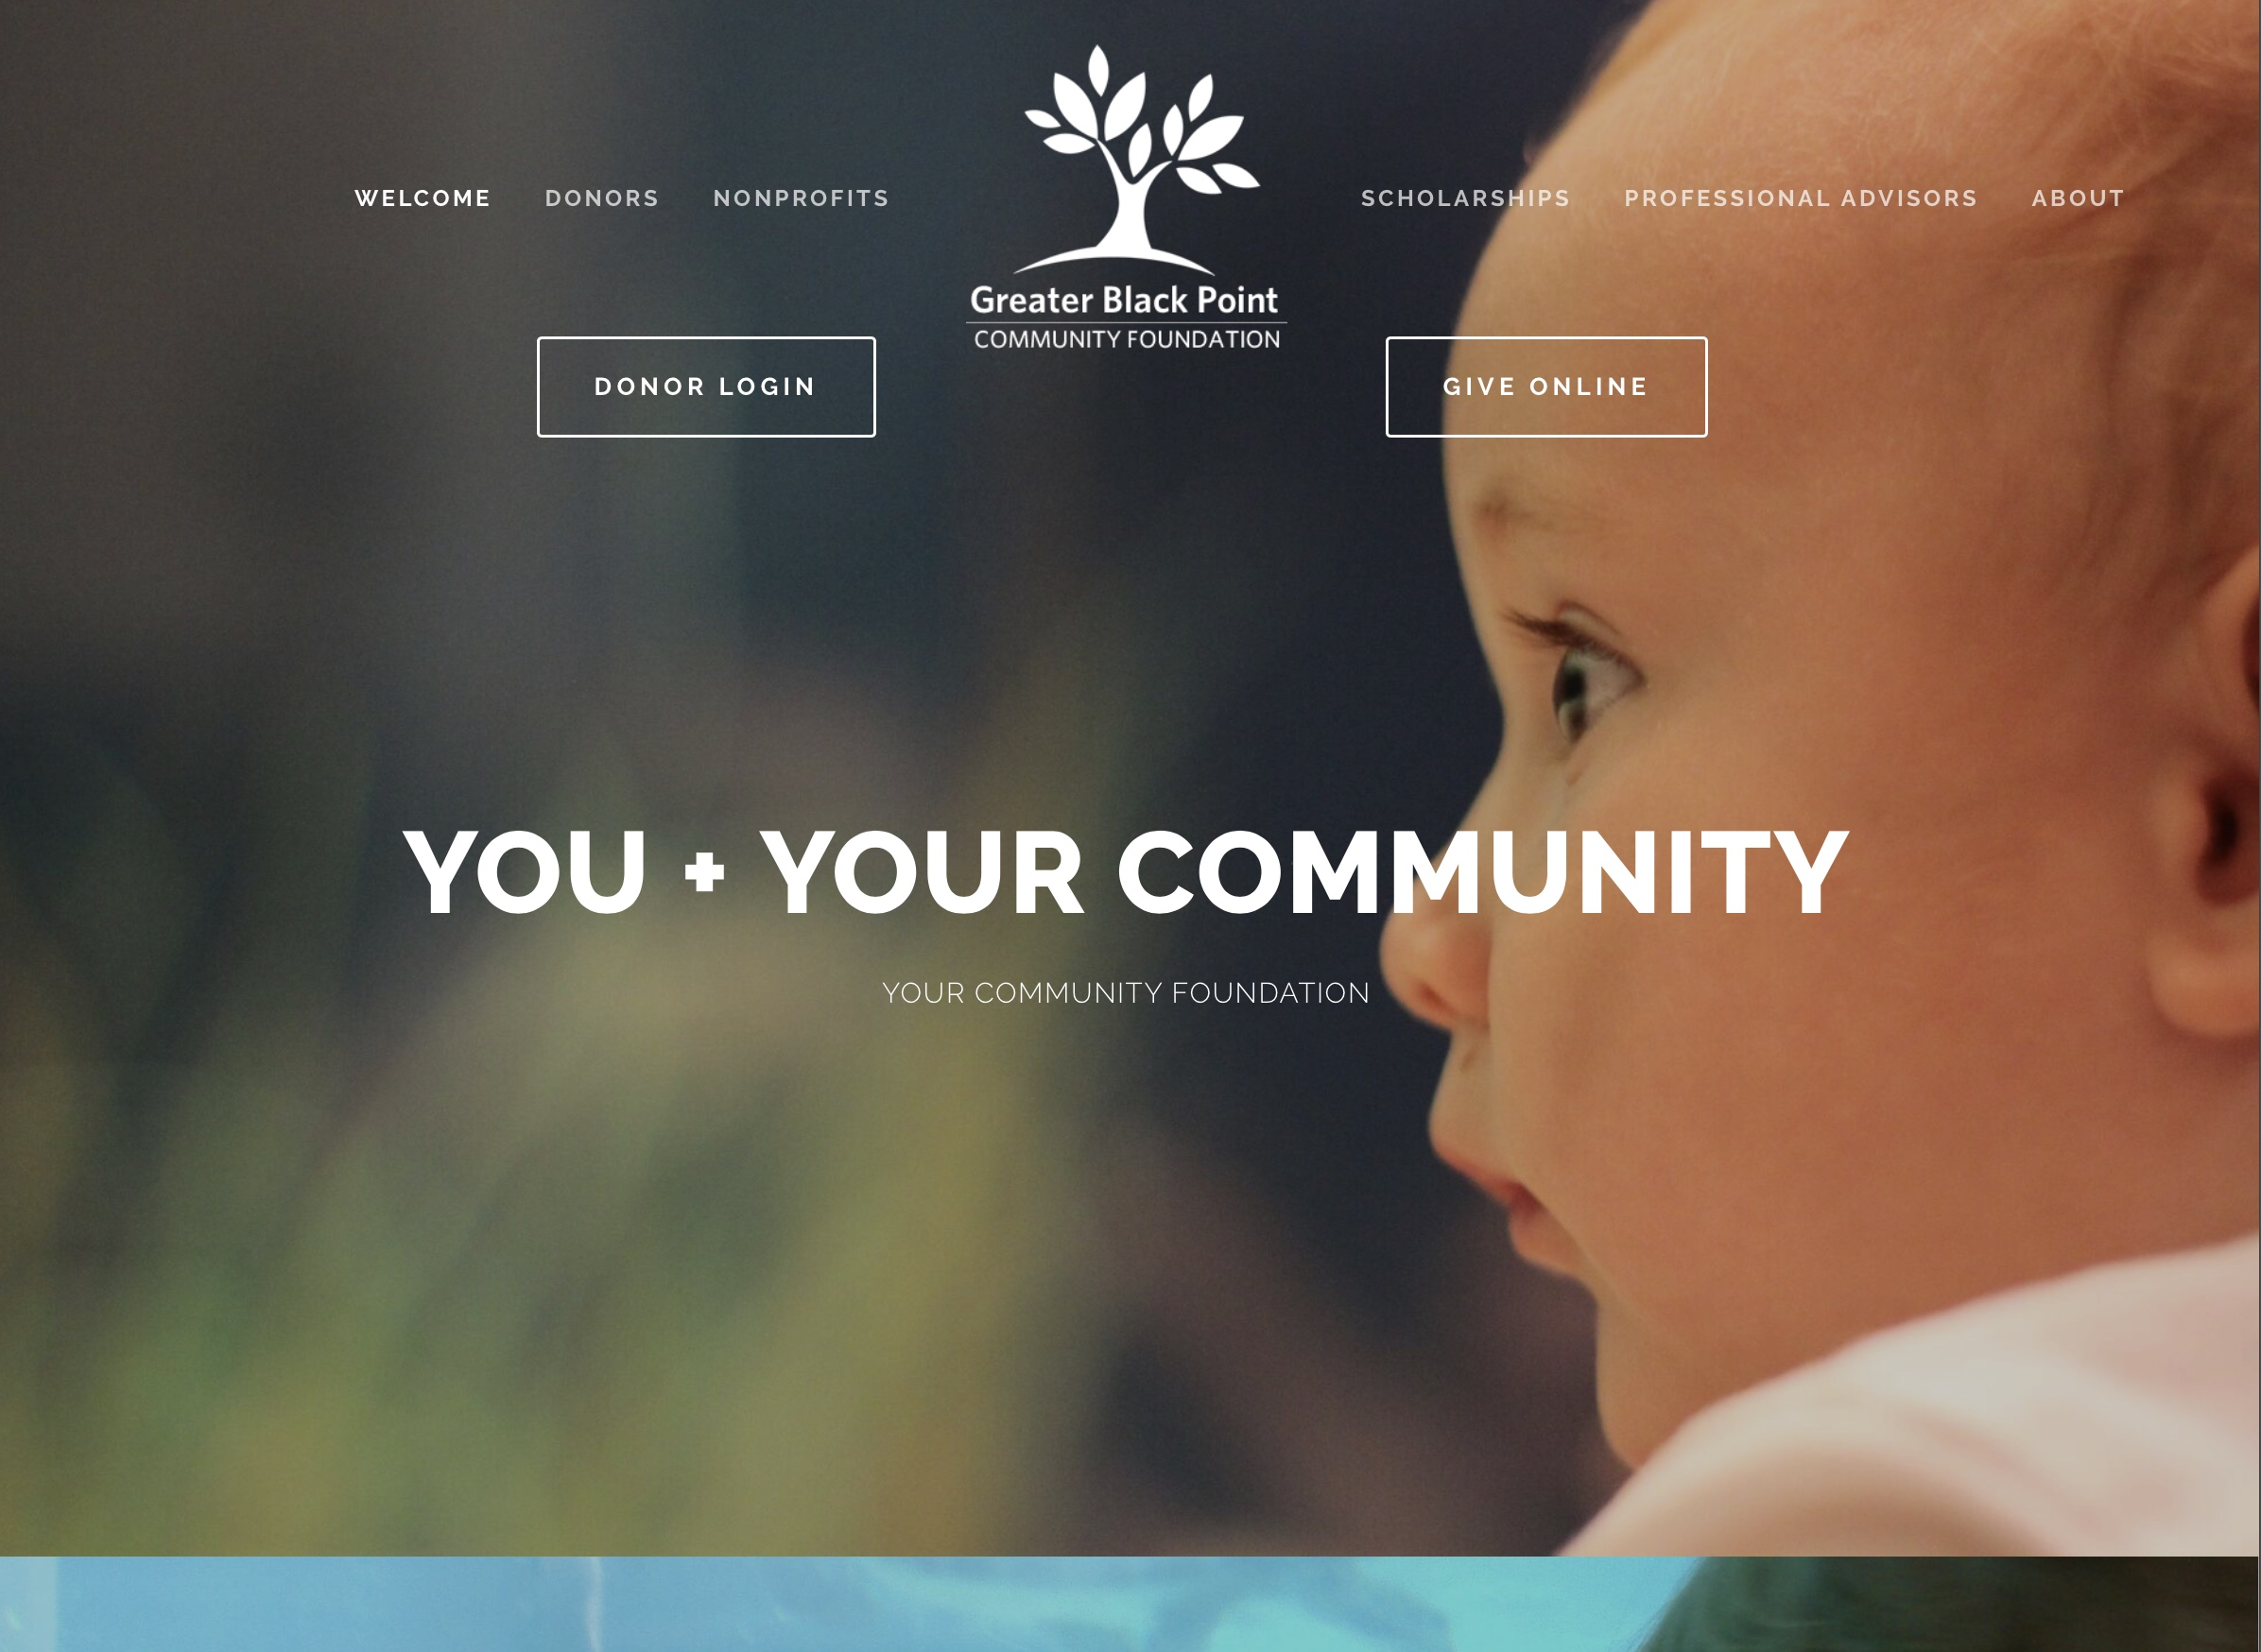 - Community Foundation Templates